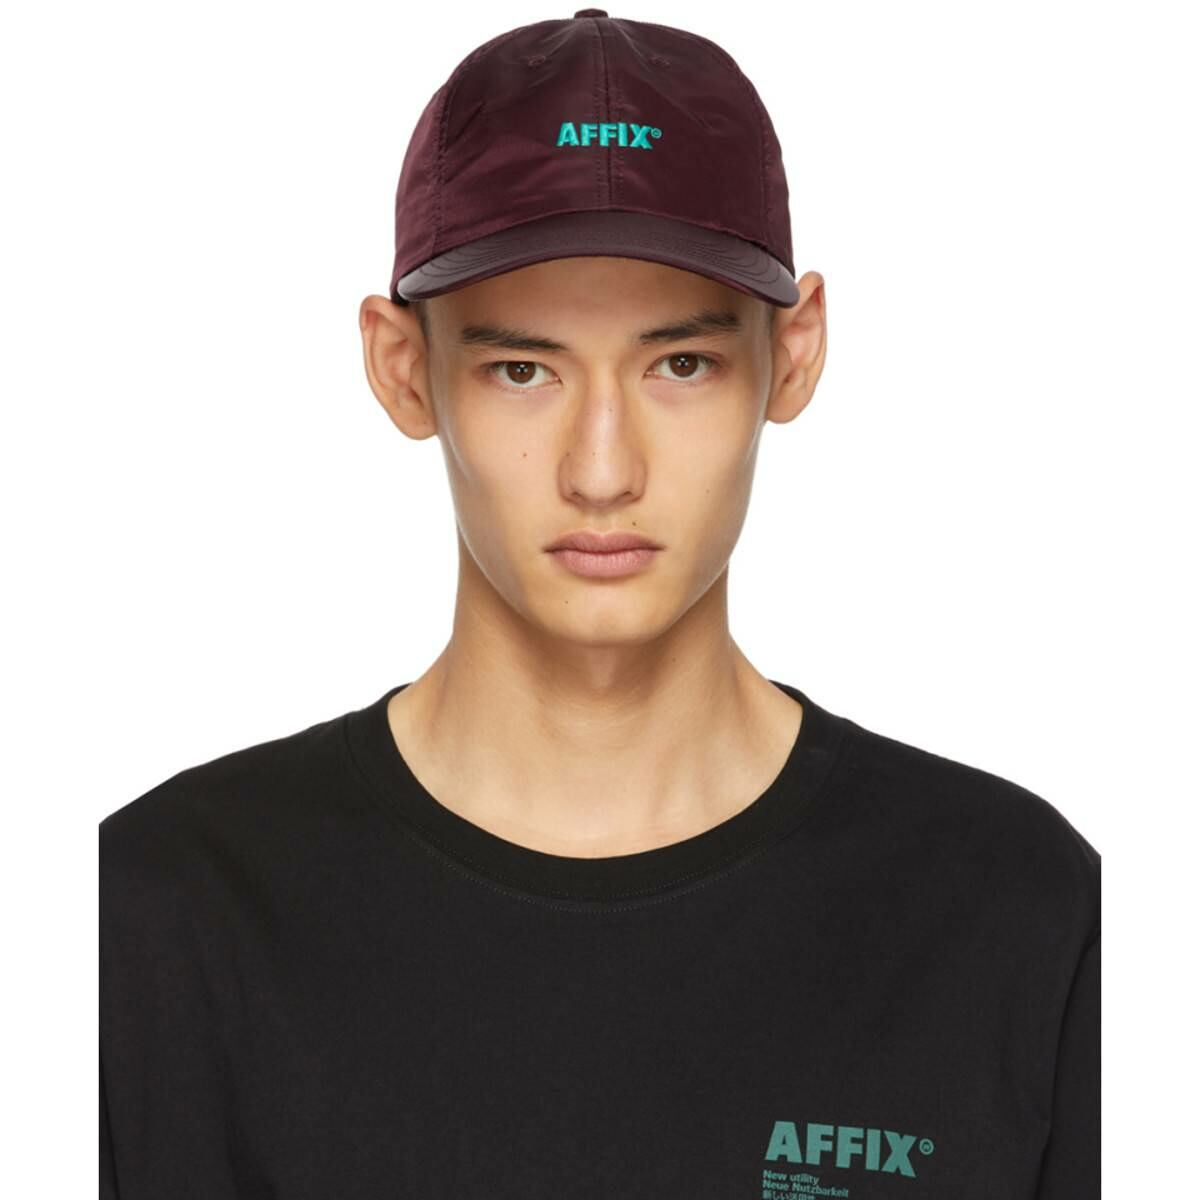 Affix Red Standard Logo Cap Ssense USA MEN Men ACCESSORIES Mens CAPS